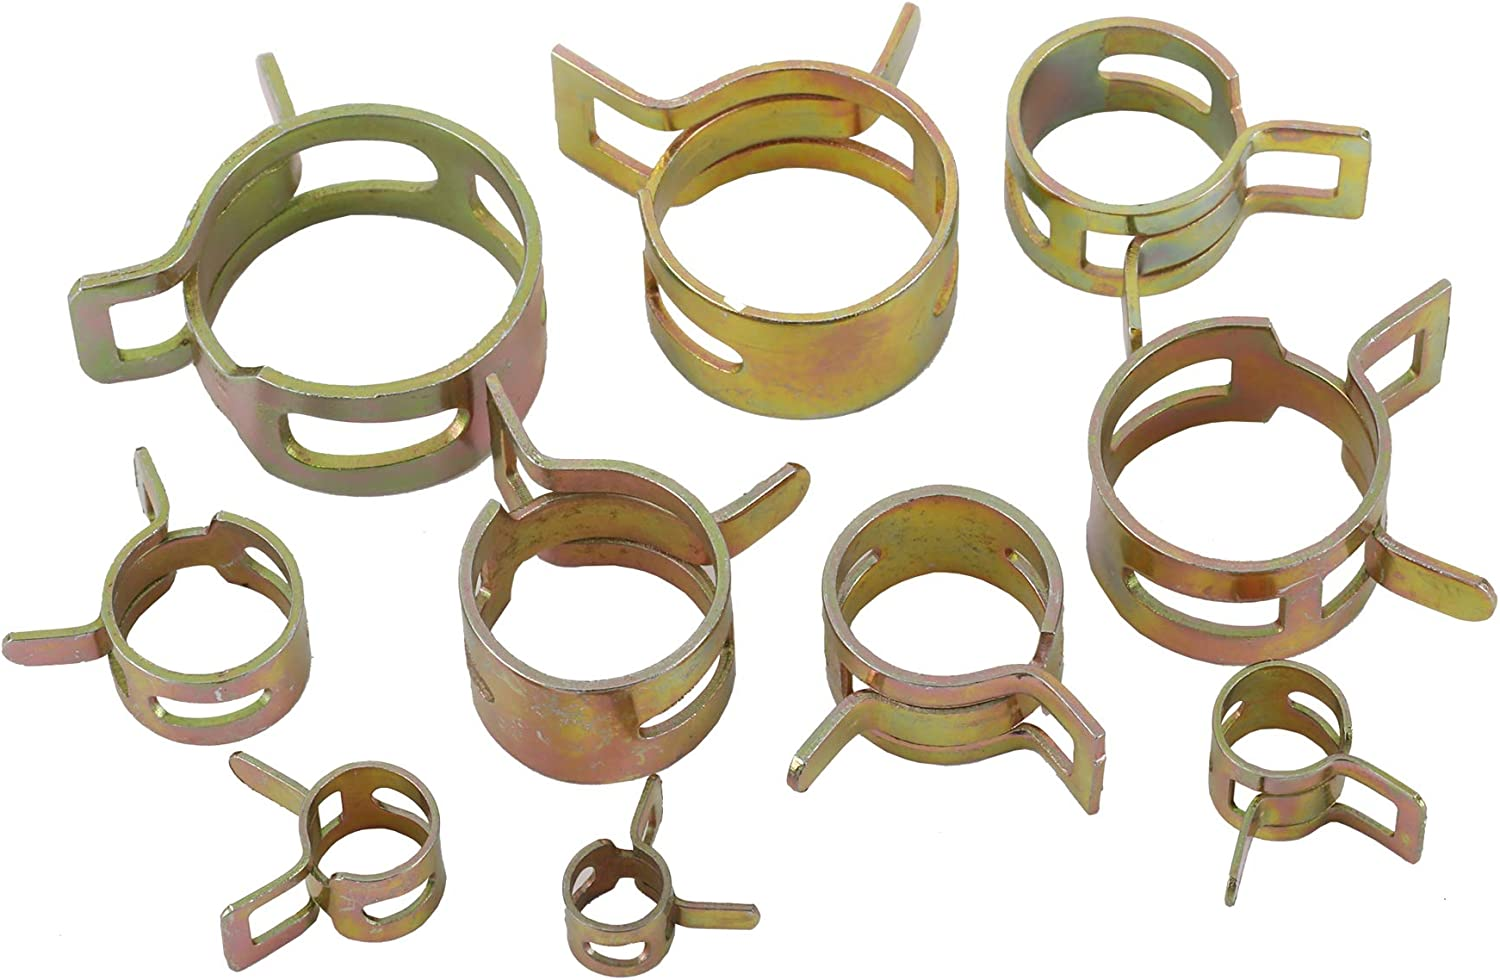 10 Sizes Fuel Line Spring Clamp Hose Pipe Clamp Fasteners AuInn 100 PCS 6-22MM Spring Hose Clamp Kit 6mm 8mm 10mm 12mm 14mm 15mm 16mm 18mm 20mm 22mm